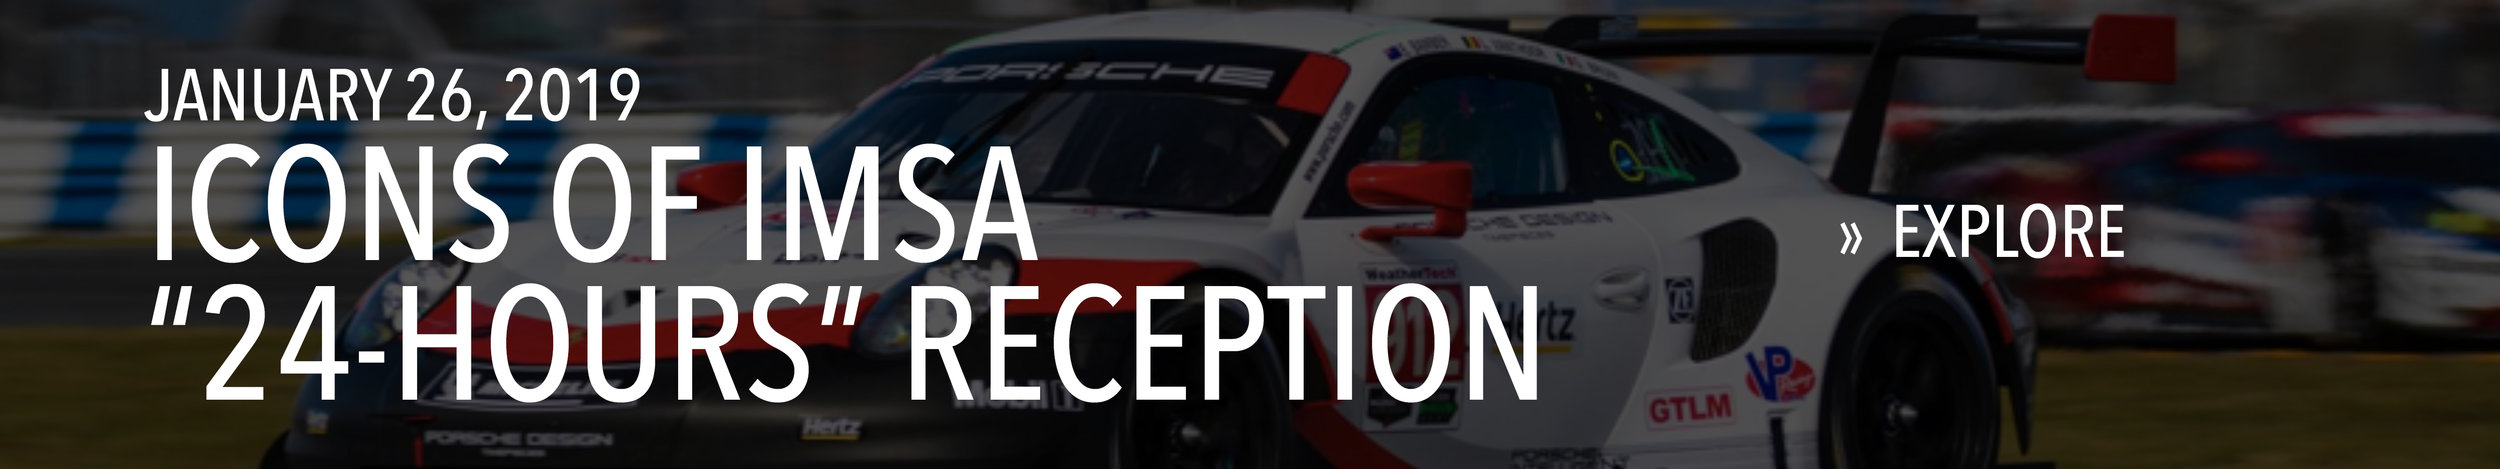 "Icons of IMSA ""24 Hours"" Reception on January 26, 2019."